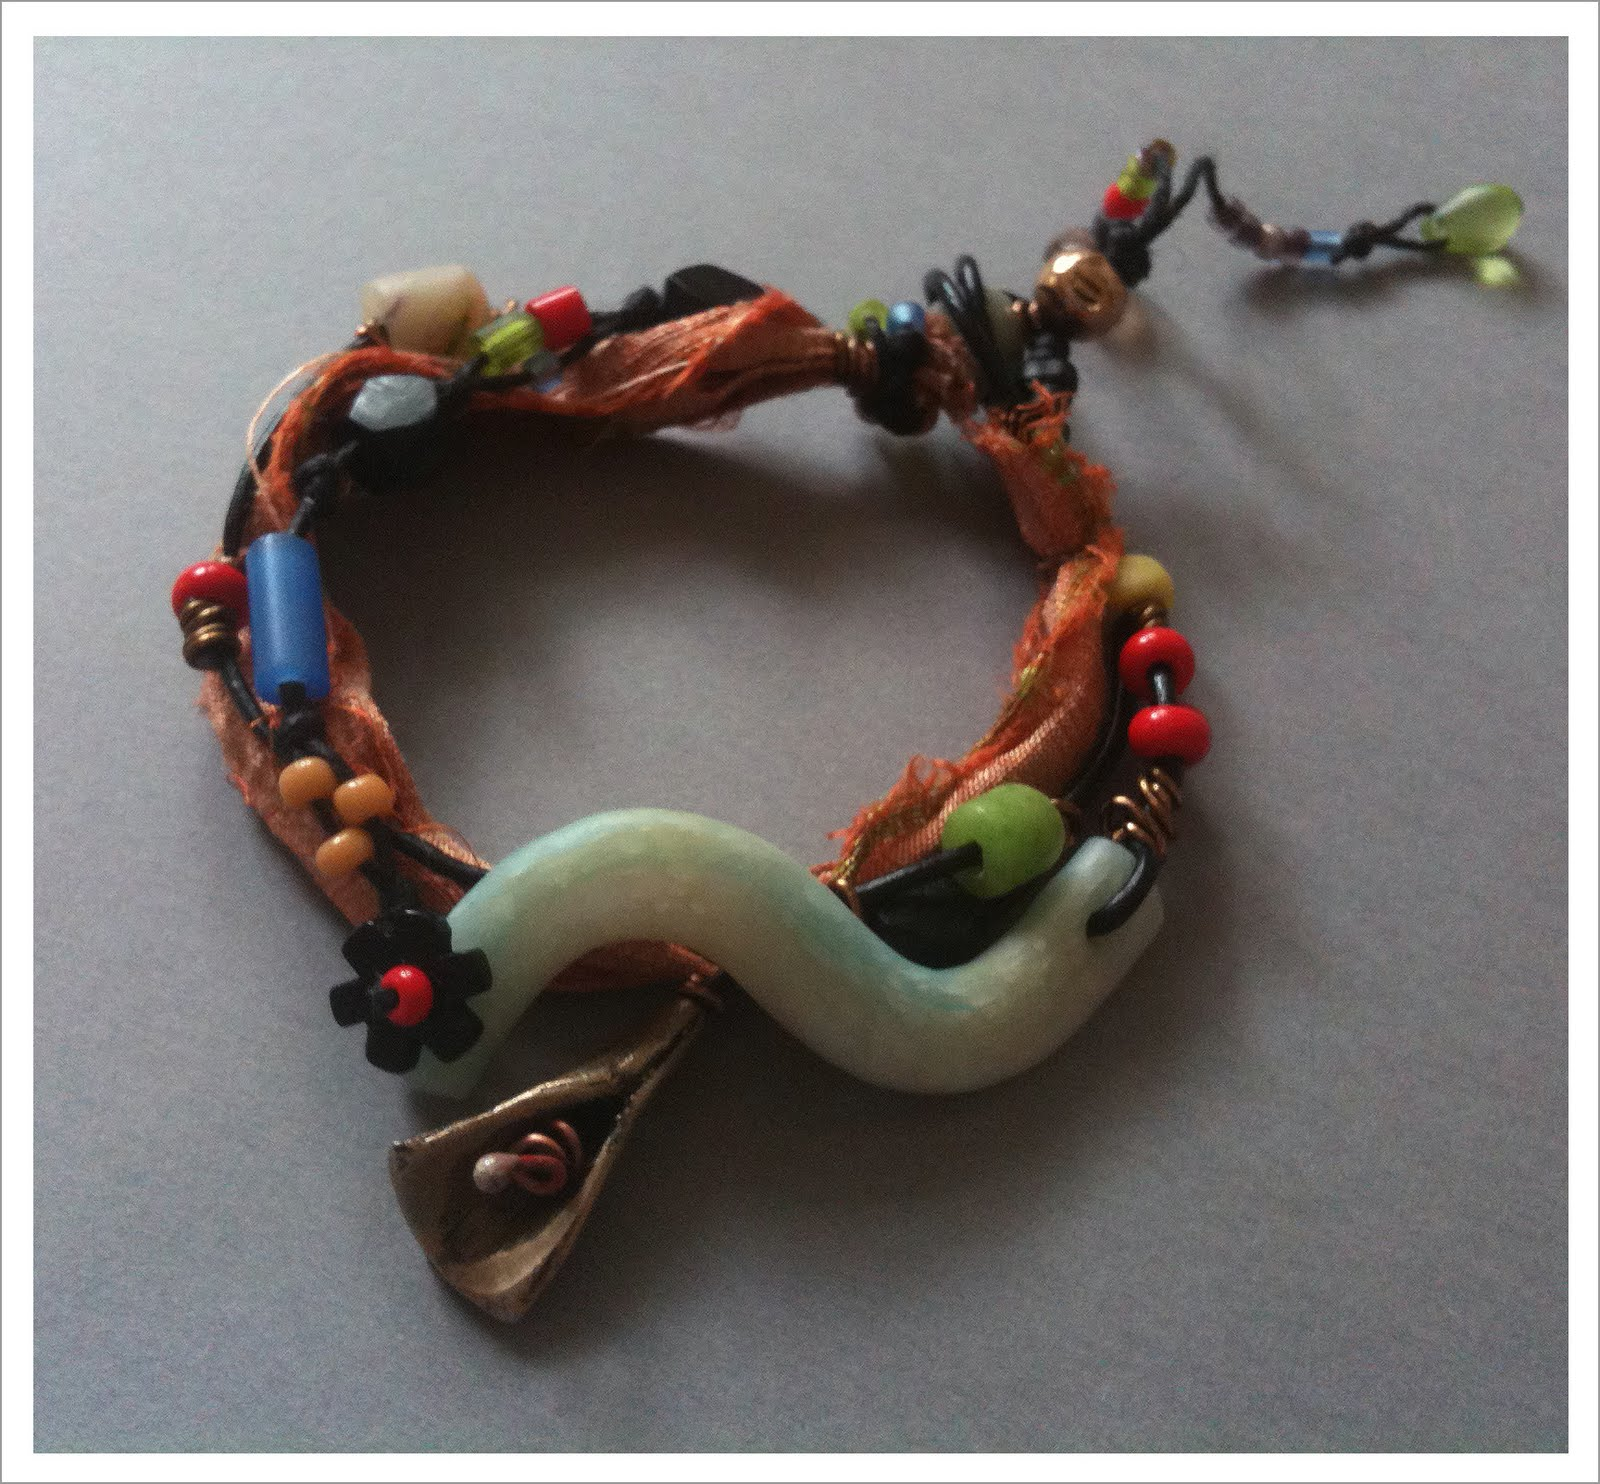 january isabel entry bracelet chloe n hart img